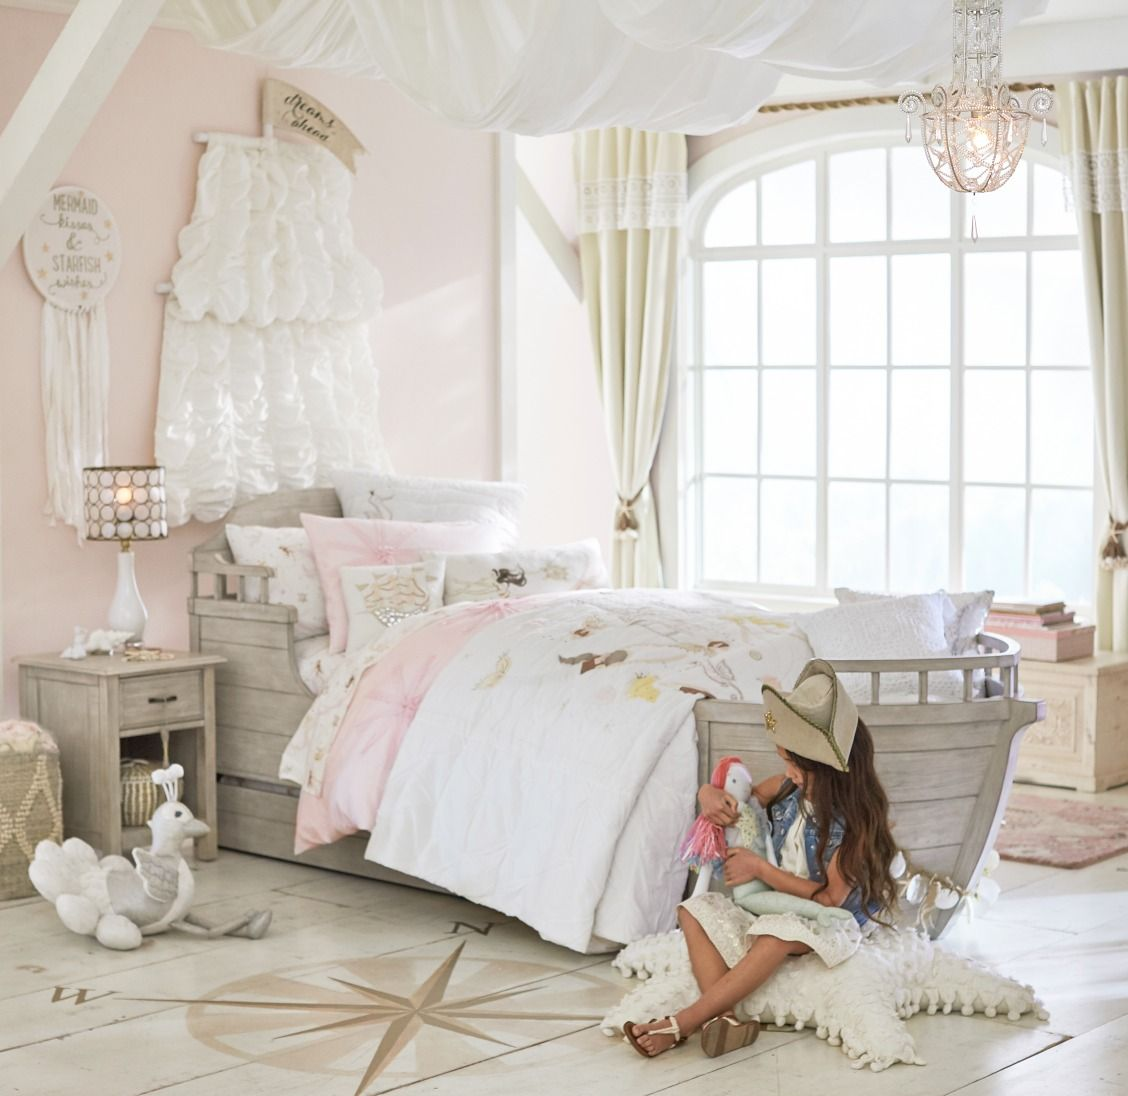 For more little girl bedroom ideas head over to Pottery